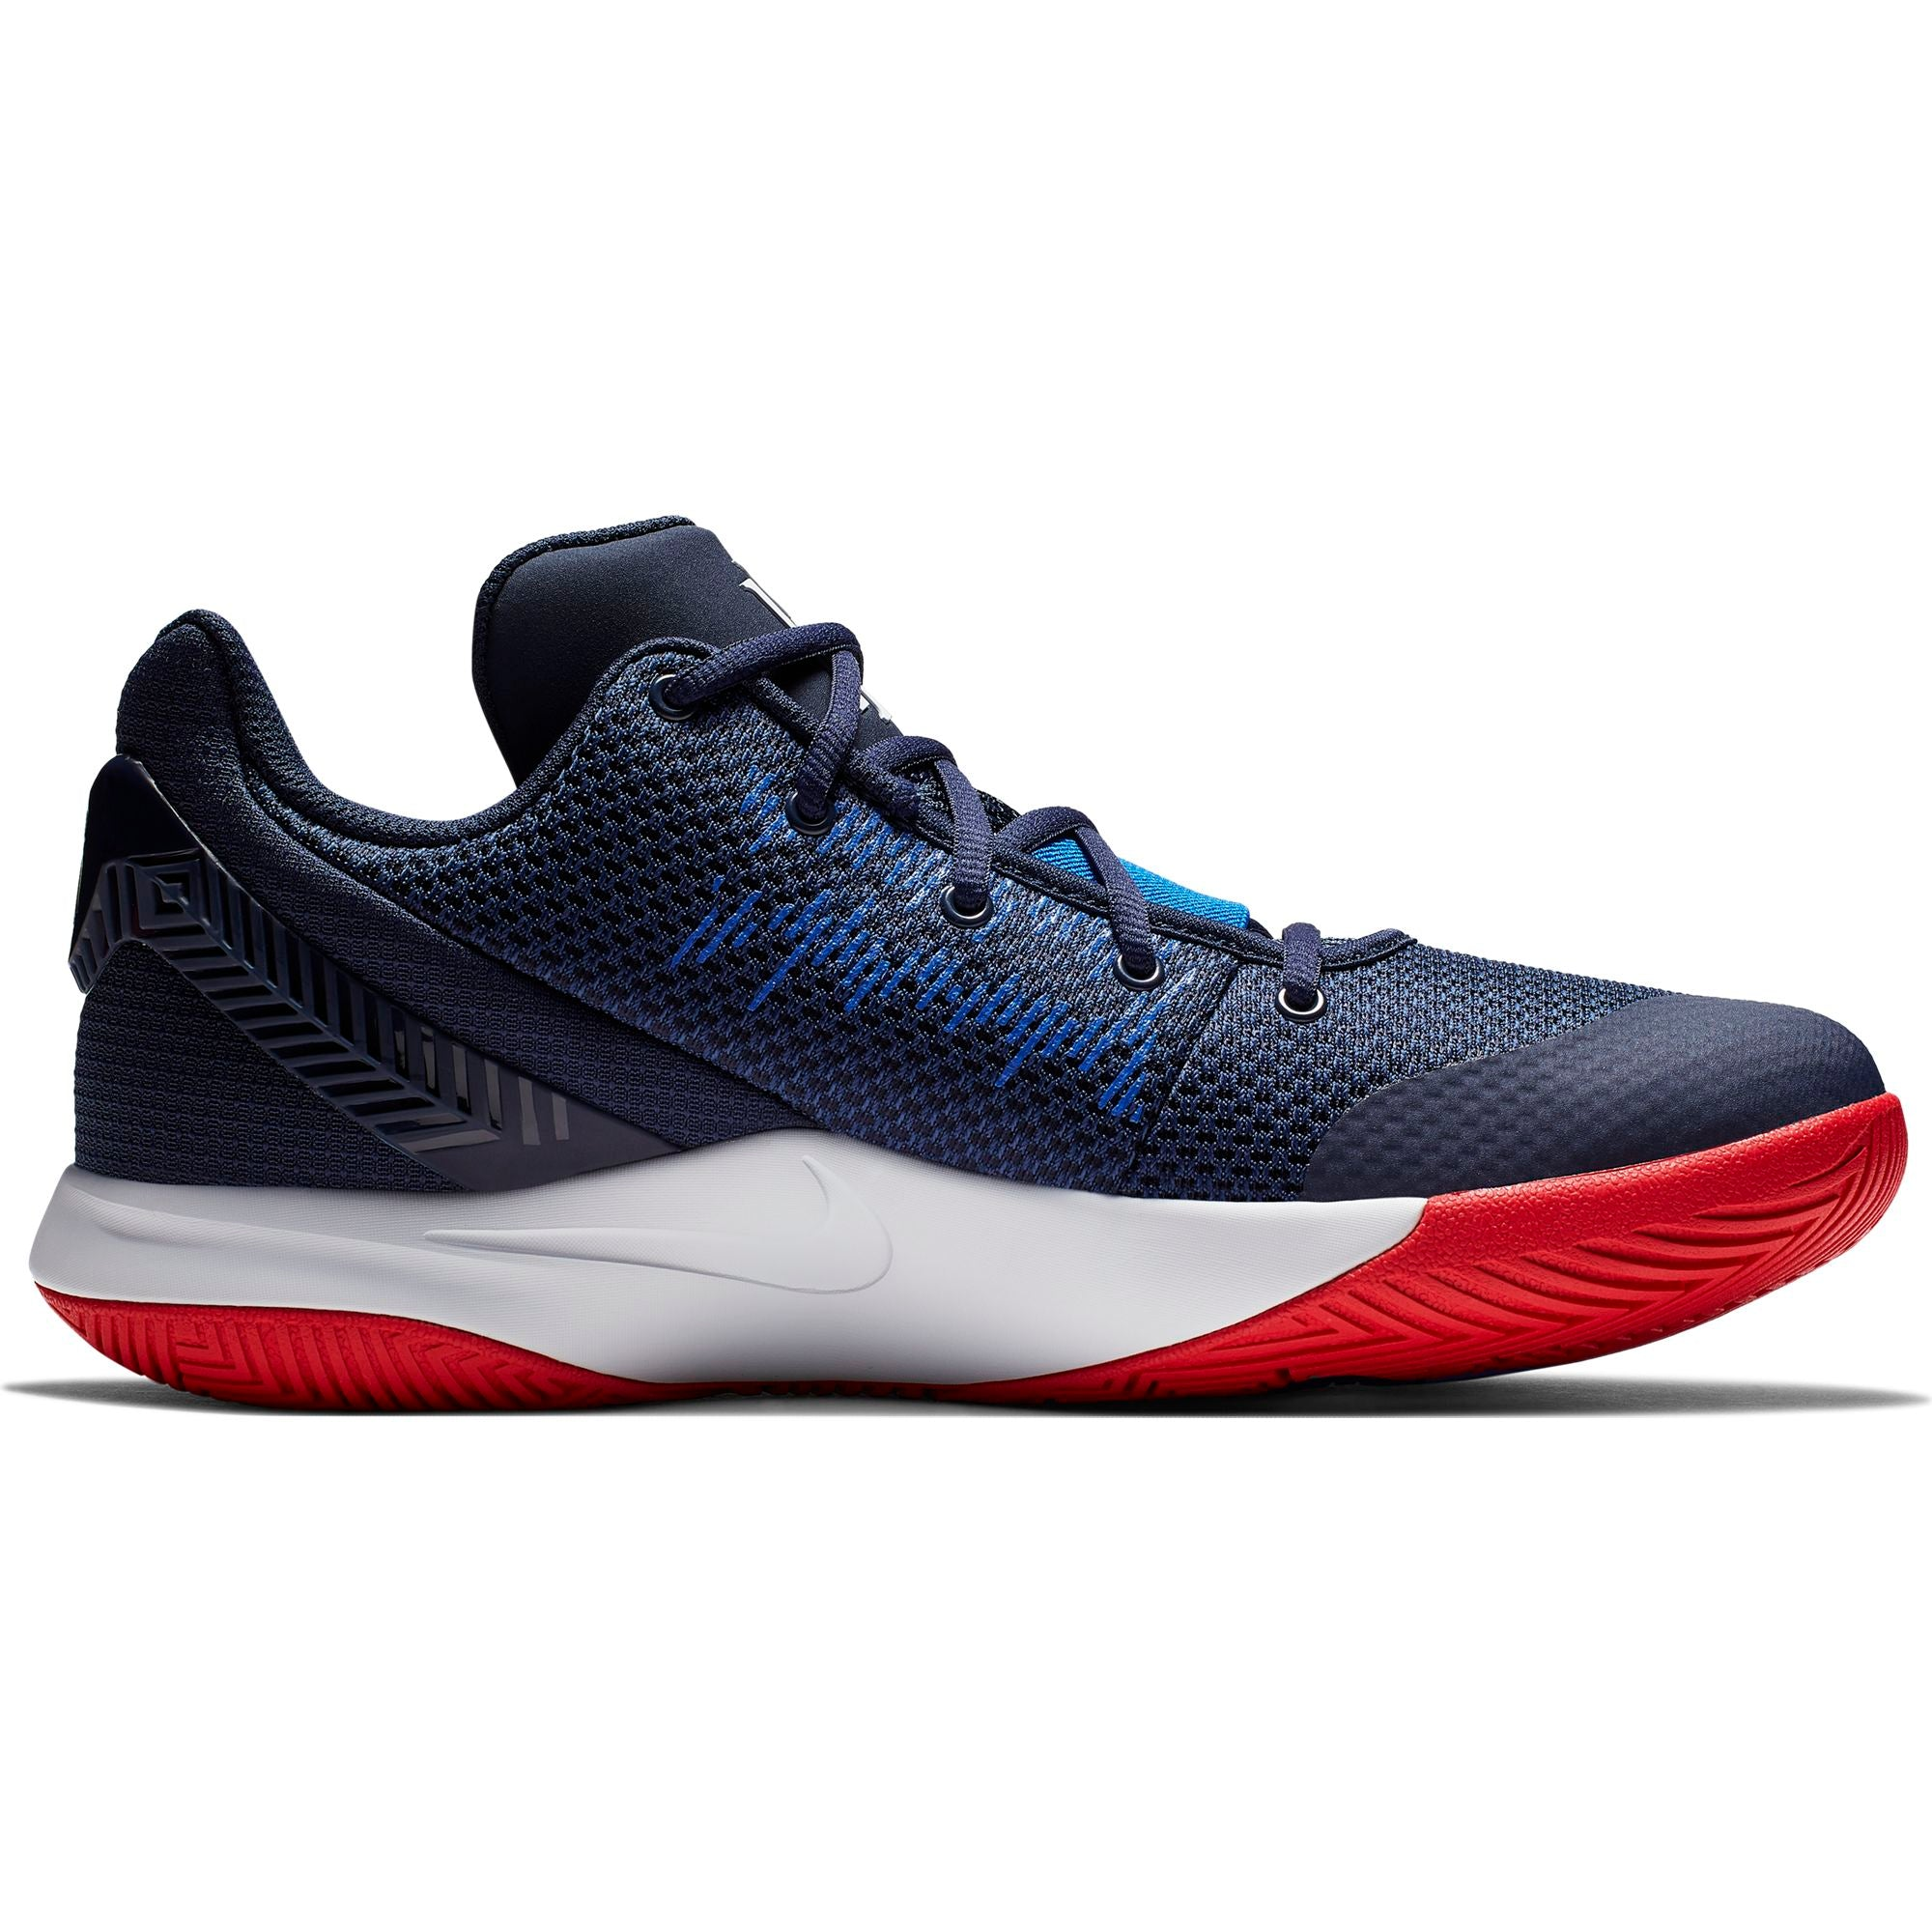 Nike Kyrie Flytrap II  Basketball Boot/Shoe - Obsidian/Black/University Red/Game Royal